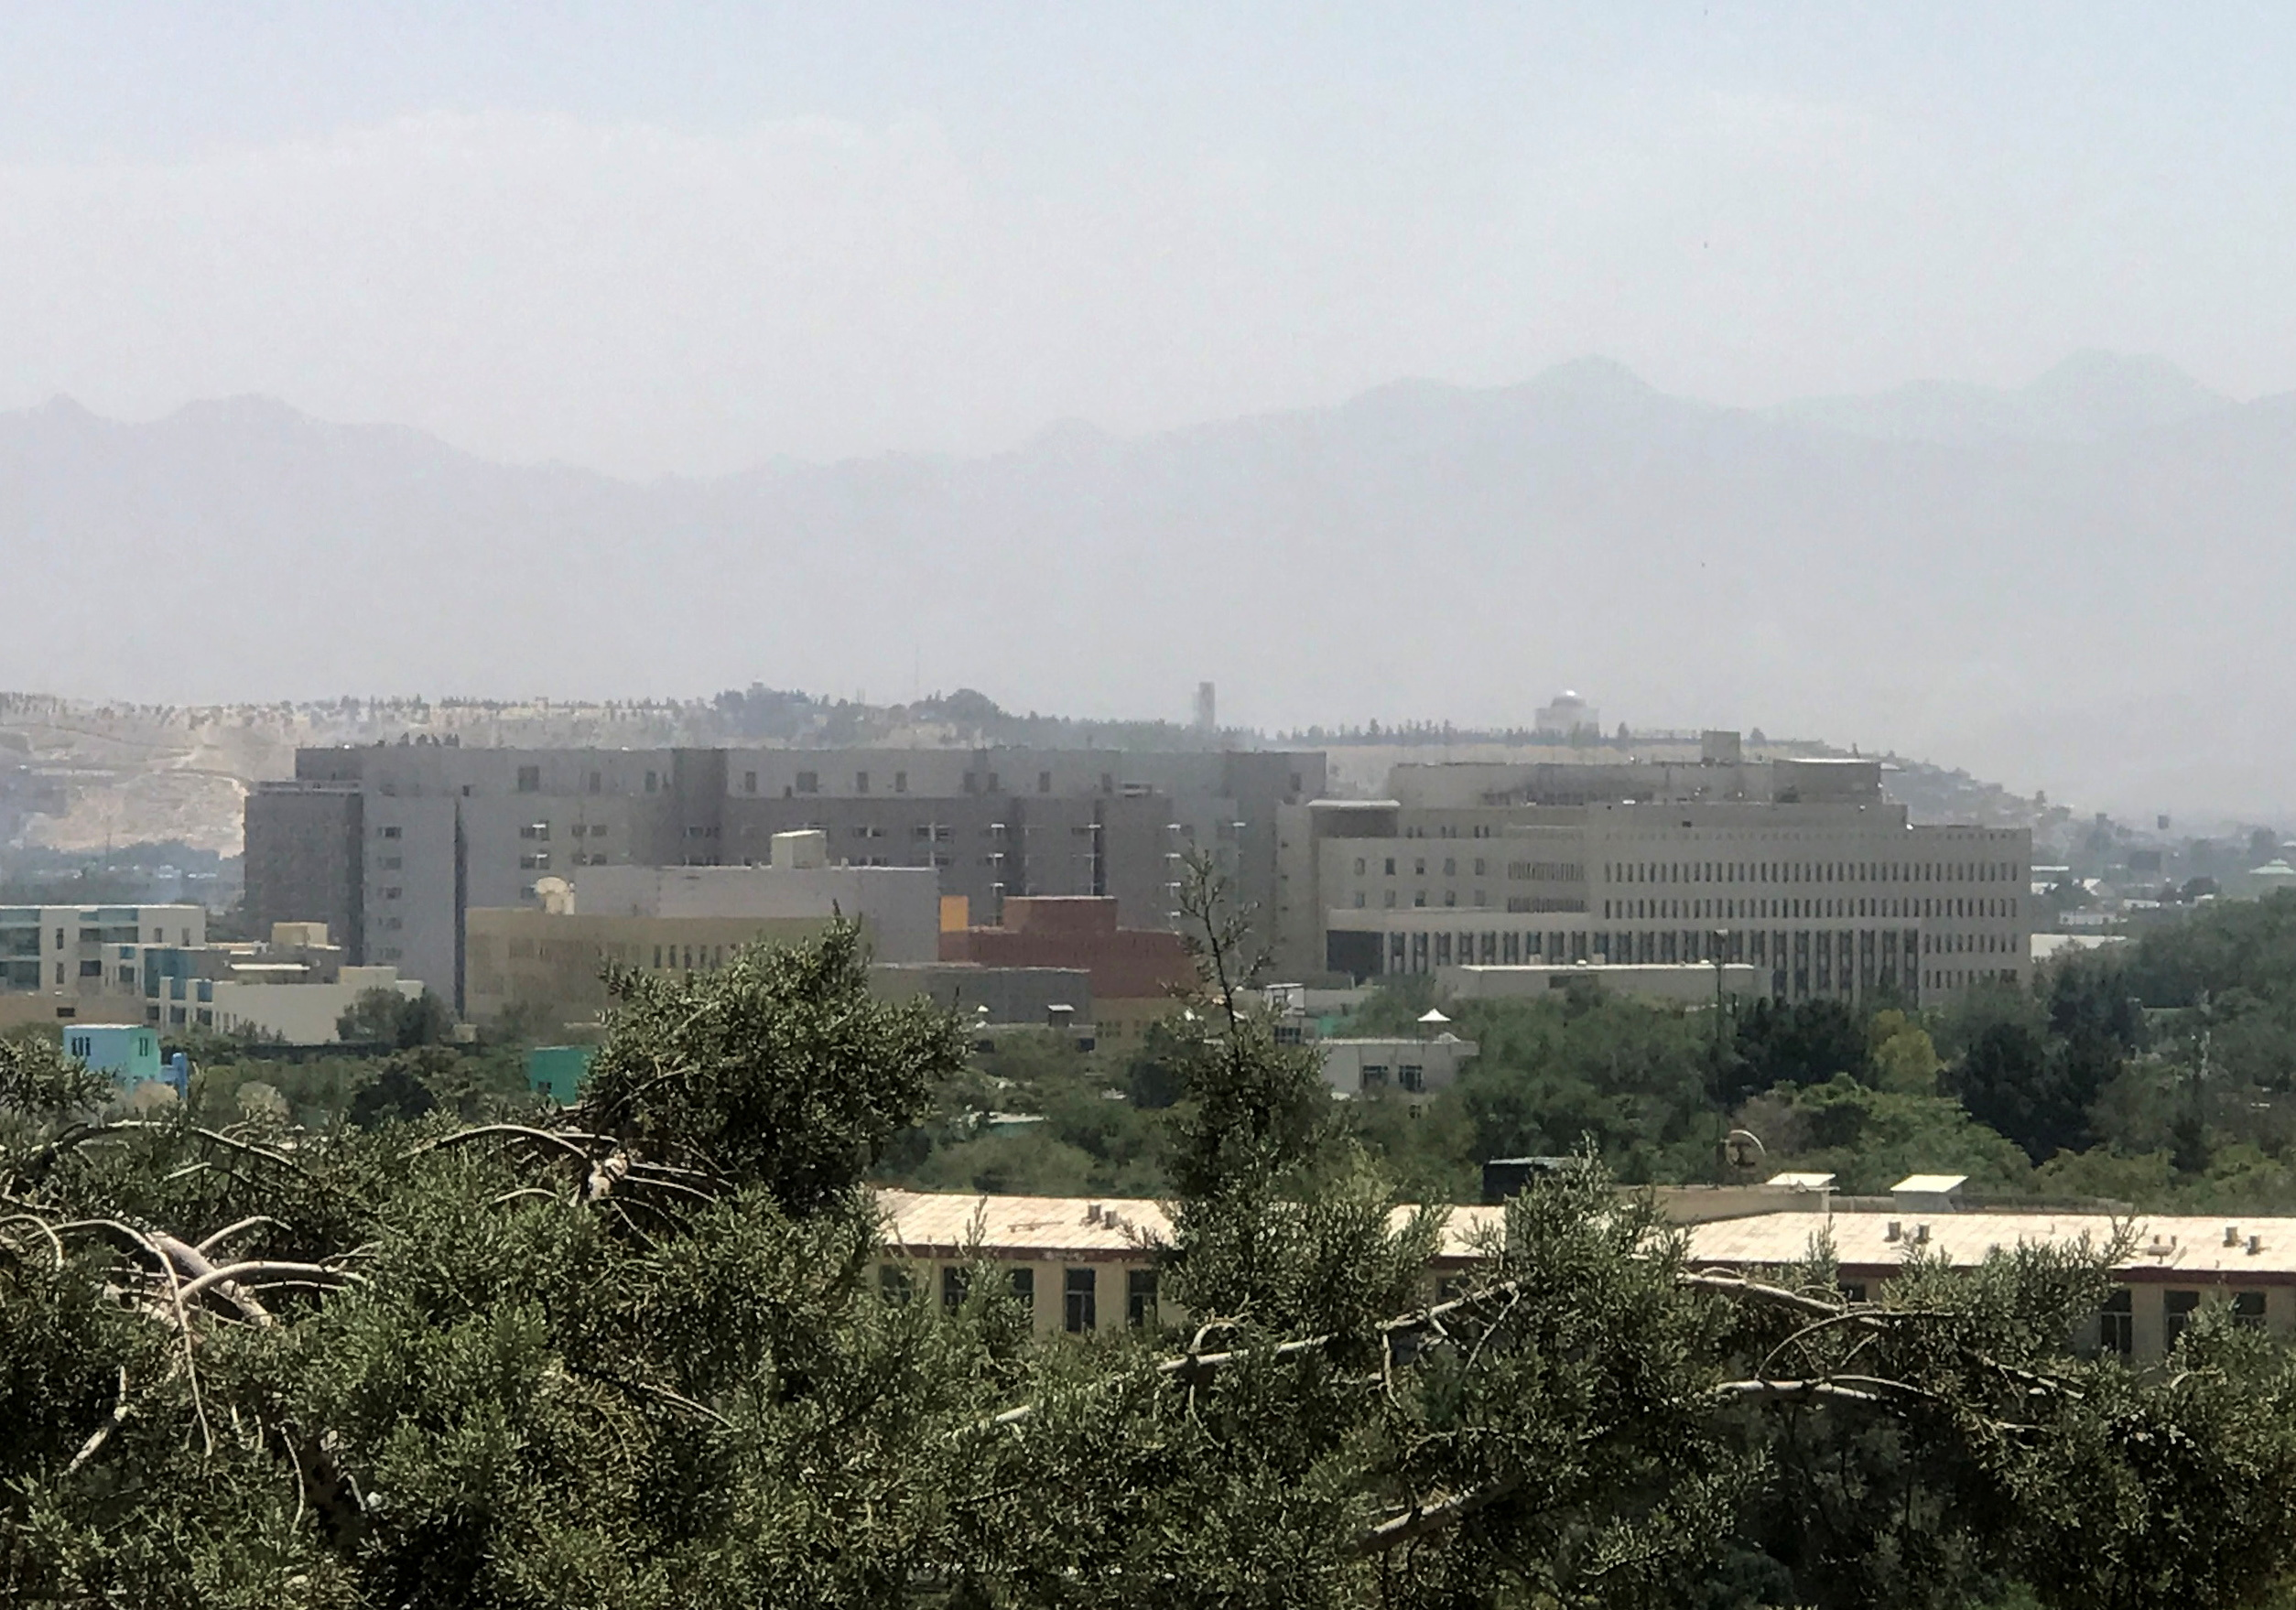 A general view of the U.S. embassy in Kabul, Afghanistan, August 15, 2021. REUTERS/Stringer